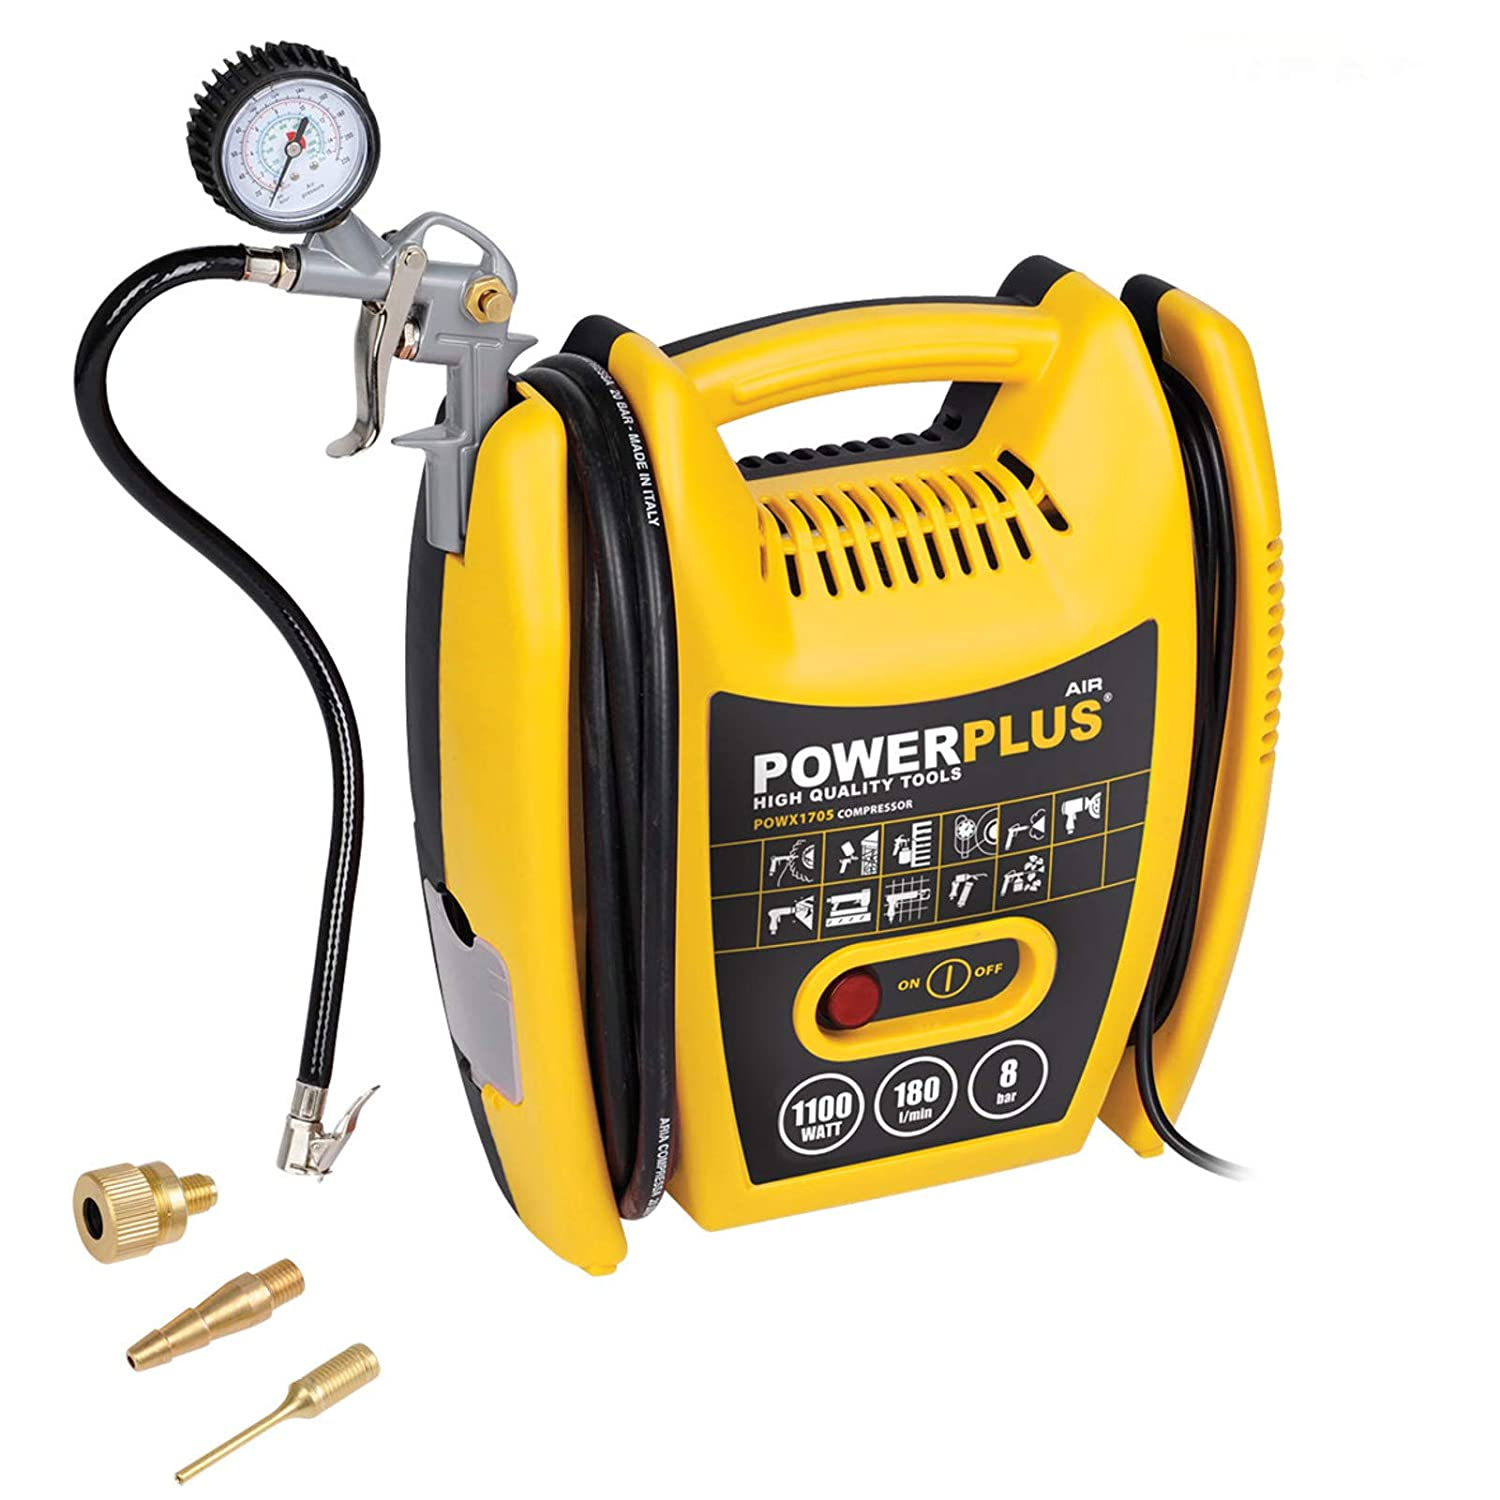 Powerplus 1.5HP, 6.33CFM, 230v, MWP 116psi, 8BAR Oil Free Air Compressor POWX1705 with Kit: Tyre Inflator, 3M Hose + Adaptors Ideal for Car/Bike, Airbed, Lilo, Football - 3 Year Home User Warranty